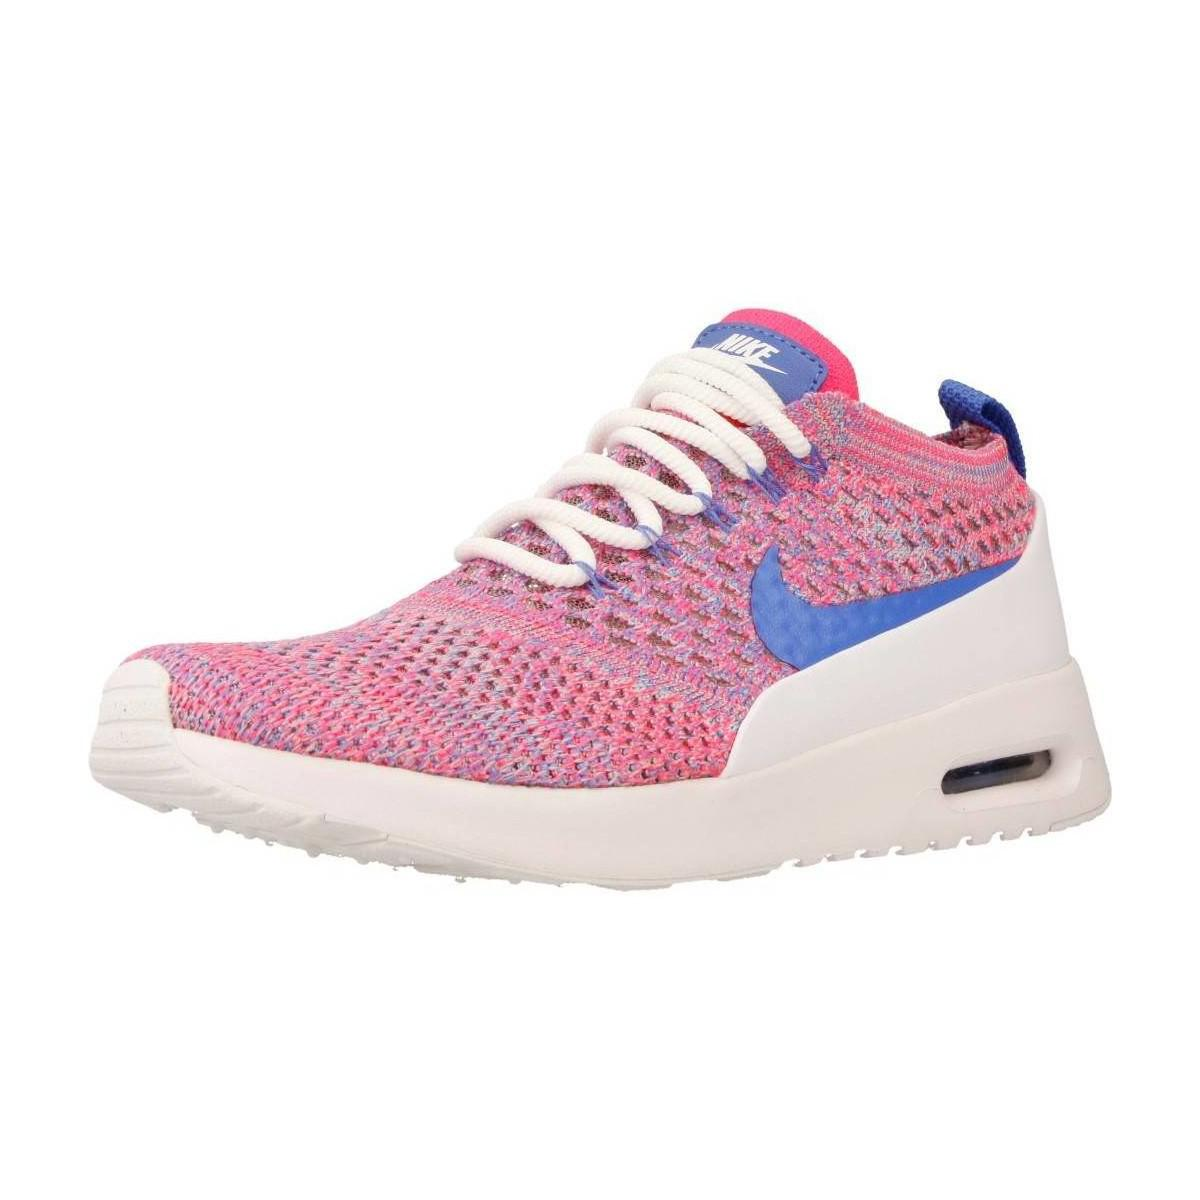 f459d1206af Nike Air Max Thea Ultra Fk Women s Shoes (trainers) In Pink in Pink ...